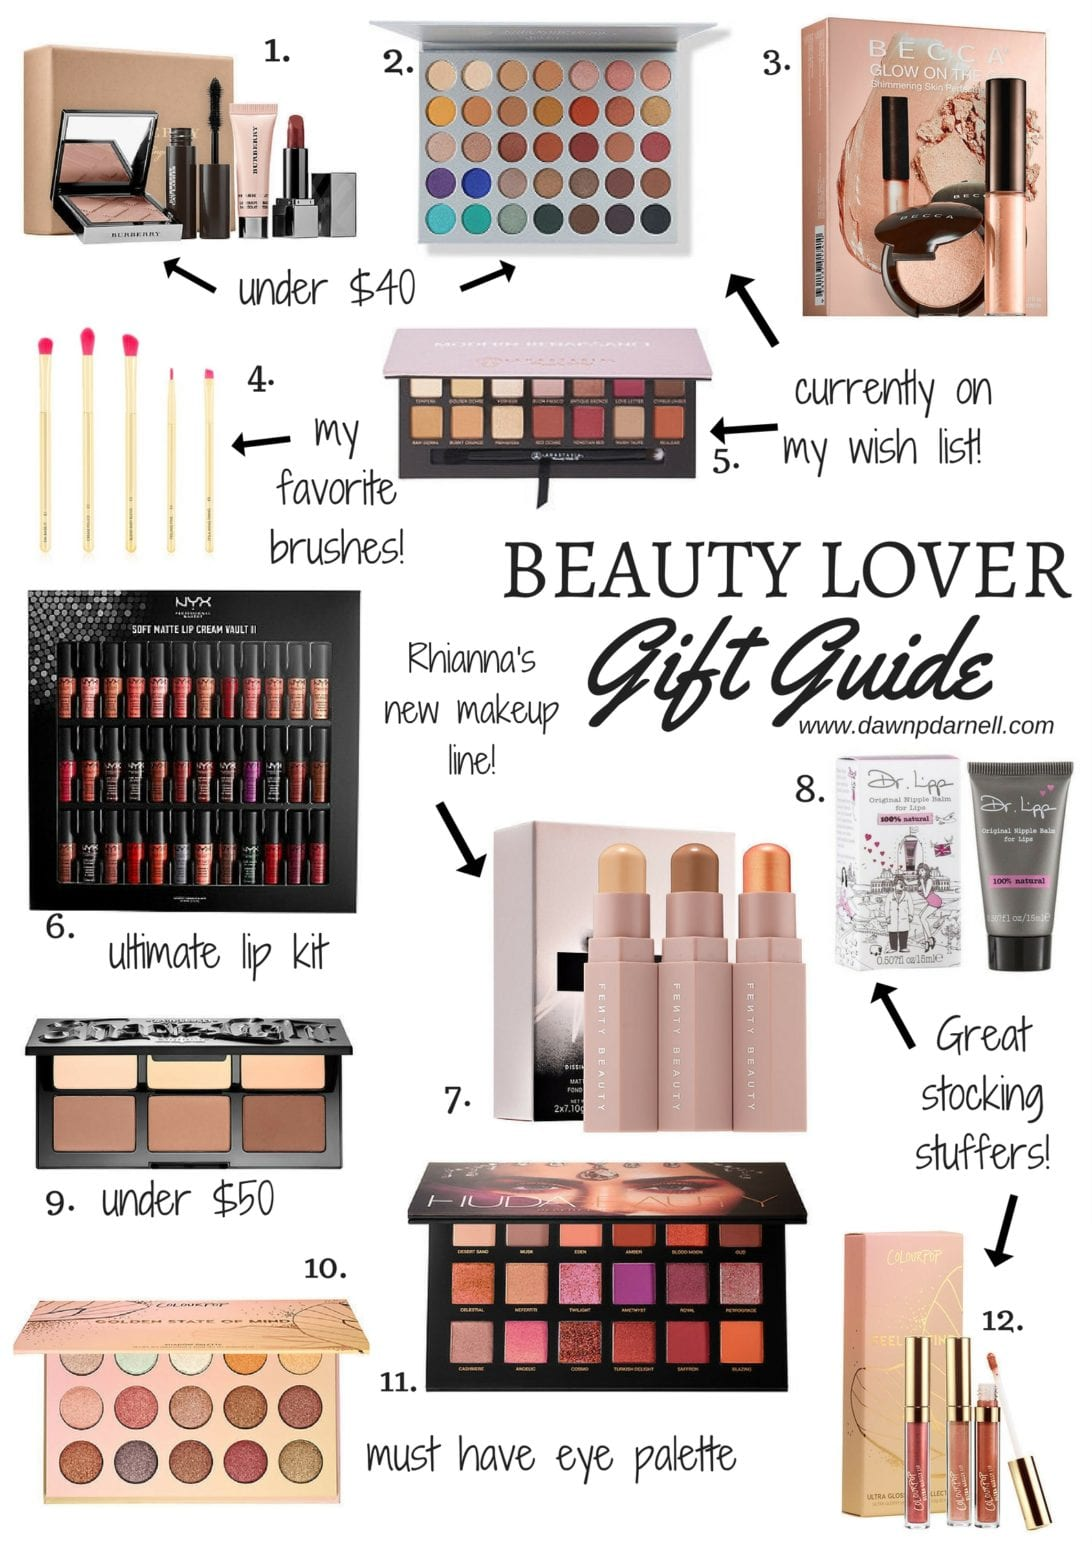 beaut love gift guide, beauty gift guide, BURBERRY Burberry Beauty Box, Jaclyn Hill Eyeshadow Palette, Glow on the Go Highlighter Set, Skinny Dip Gold Rush Eye Set, Modern Renaissance Eyeshadow Palette, NYX Soft Matte Lip Cream Vault II, Fenty Beauty Match Stix Trio, Dr. Lipp Original Nipple Balm for Lips, Kat Von D Shade + Light Face Contour Refillable Palette, Colour Pop Golden State Of Mind Shadow Palette, Huda Beauty Desert Dusk Eyeshadow Palette, Colour Pop Feelin' Fine Lip Gloss Trio